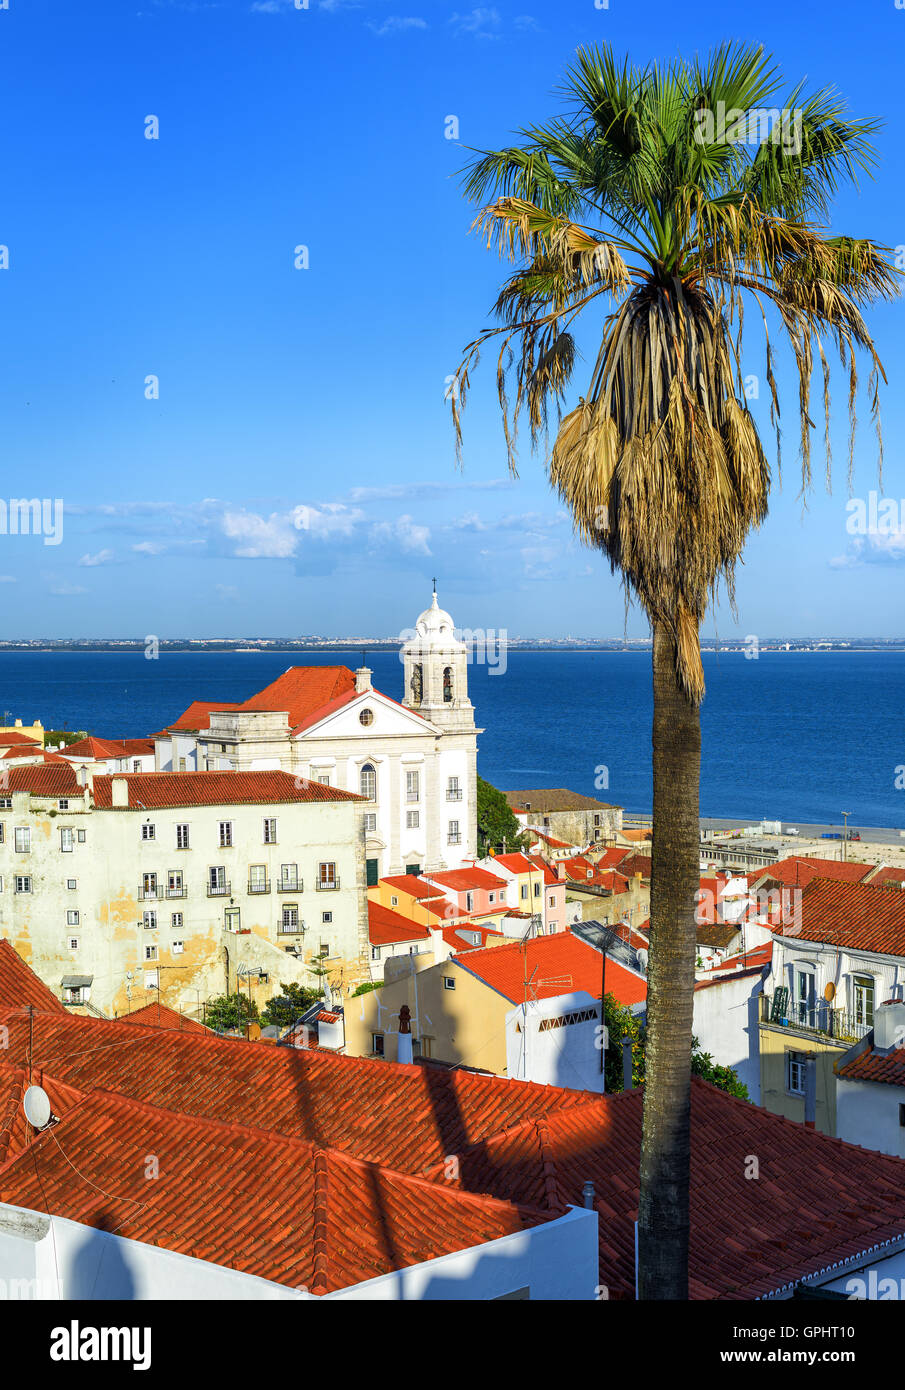 View over roofs of Alfama, the old quarter of Lisbon, Portugal - Stock Image